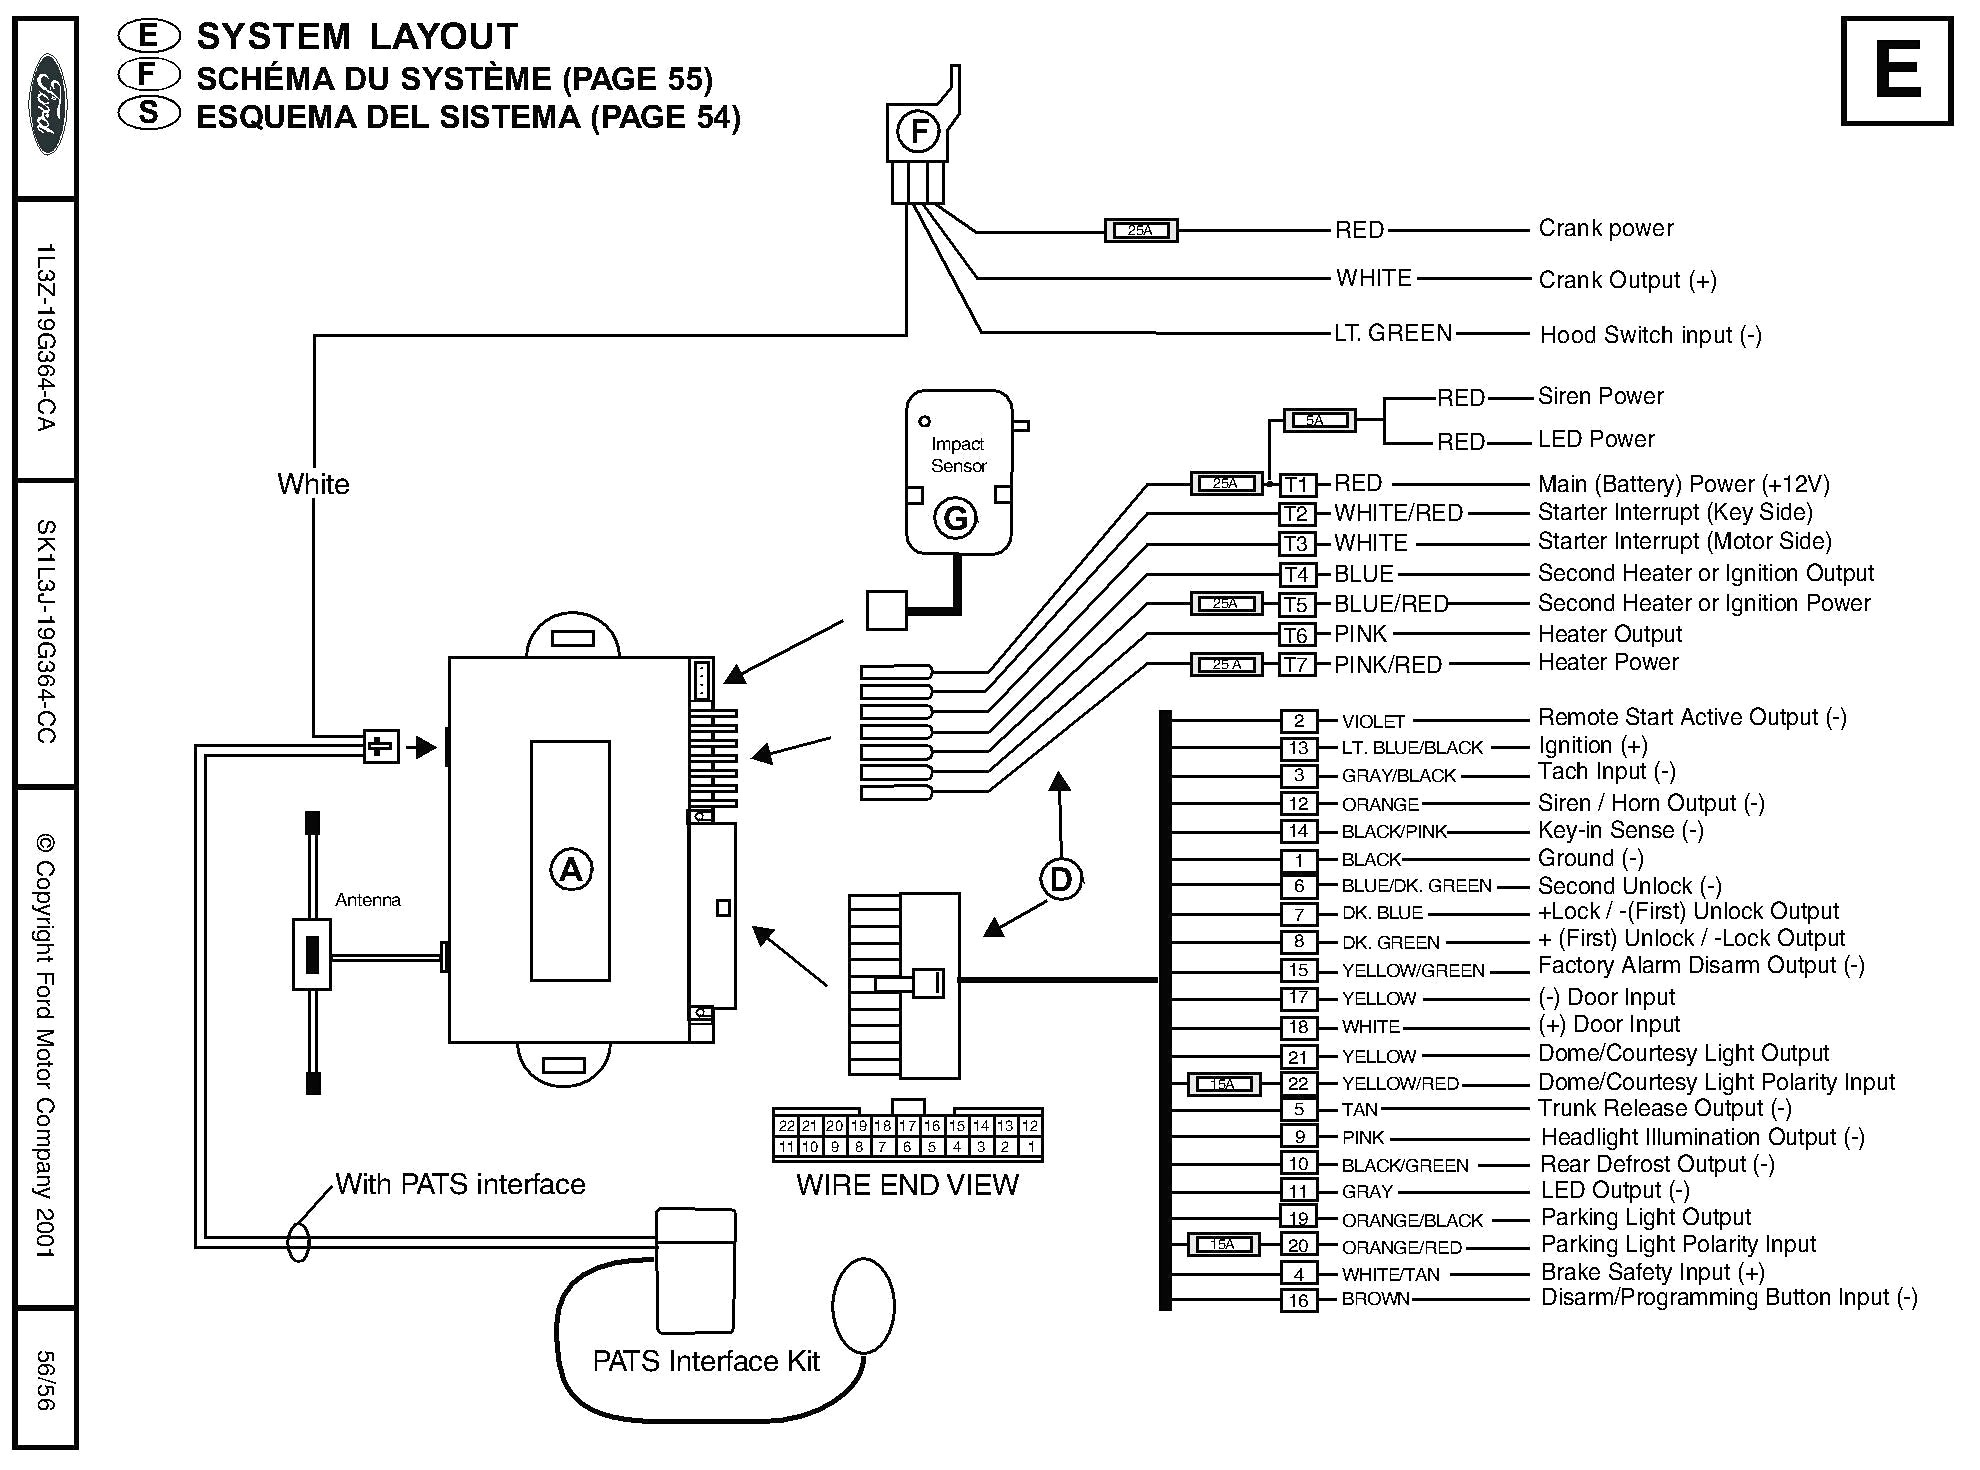 Portable Heater Wiring Diagram Bulldog Diagrams Hot Water 1989 F700 Ge 88 Ford